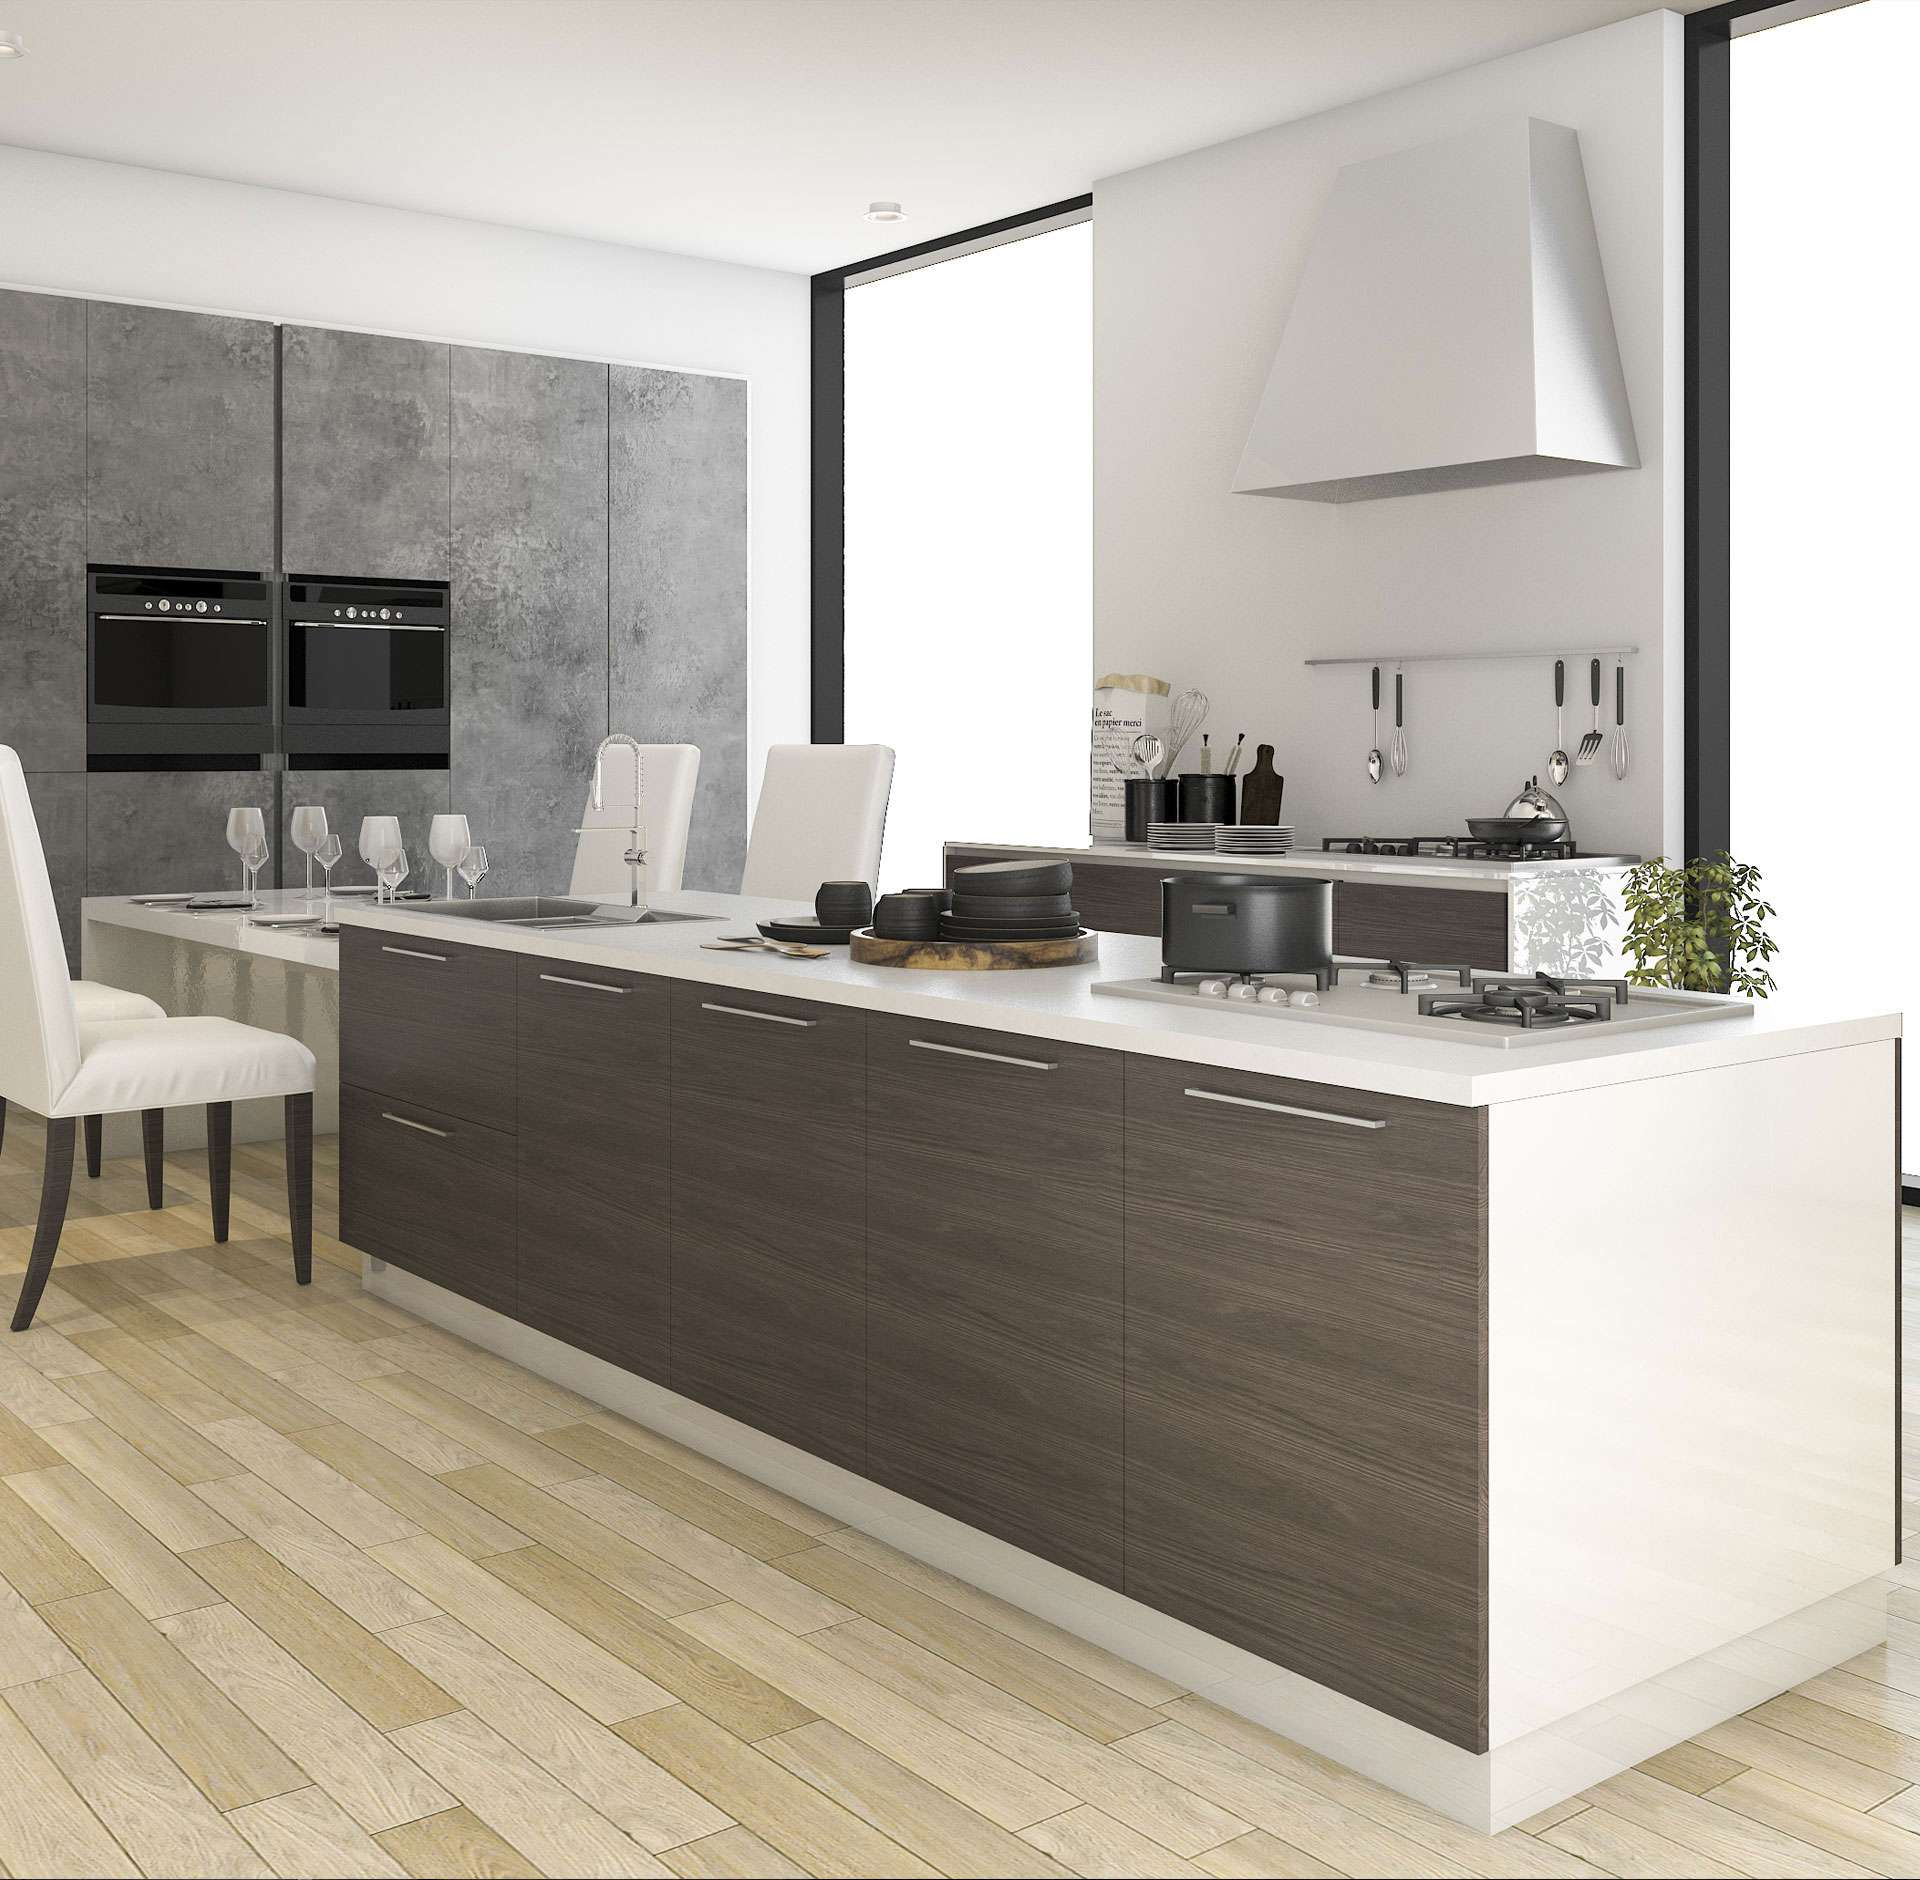 Elegant German kitchen integrates sitting area for your family